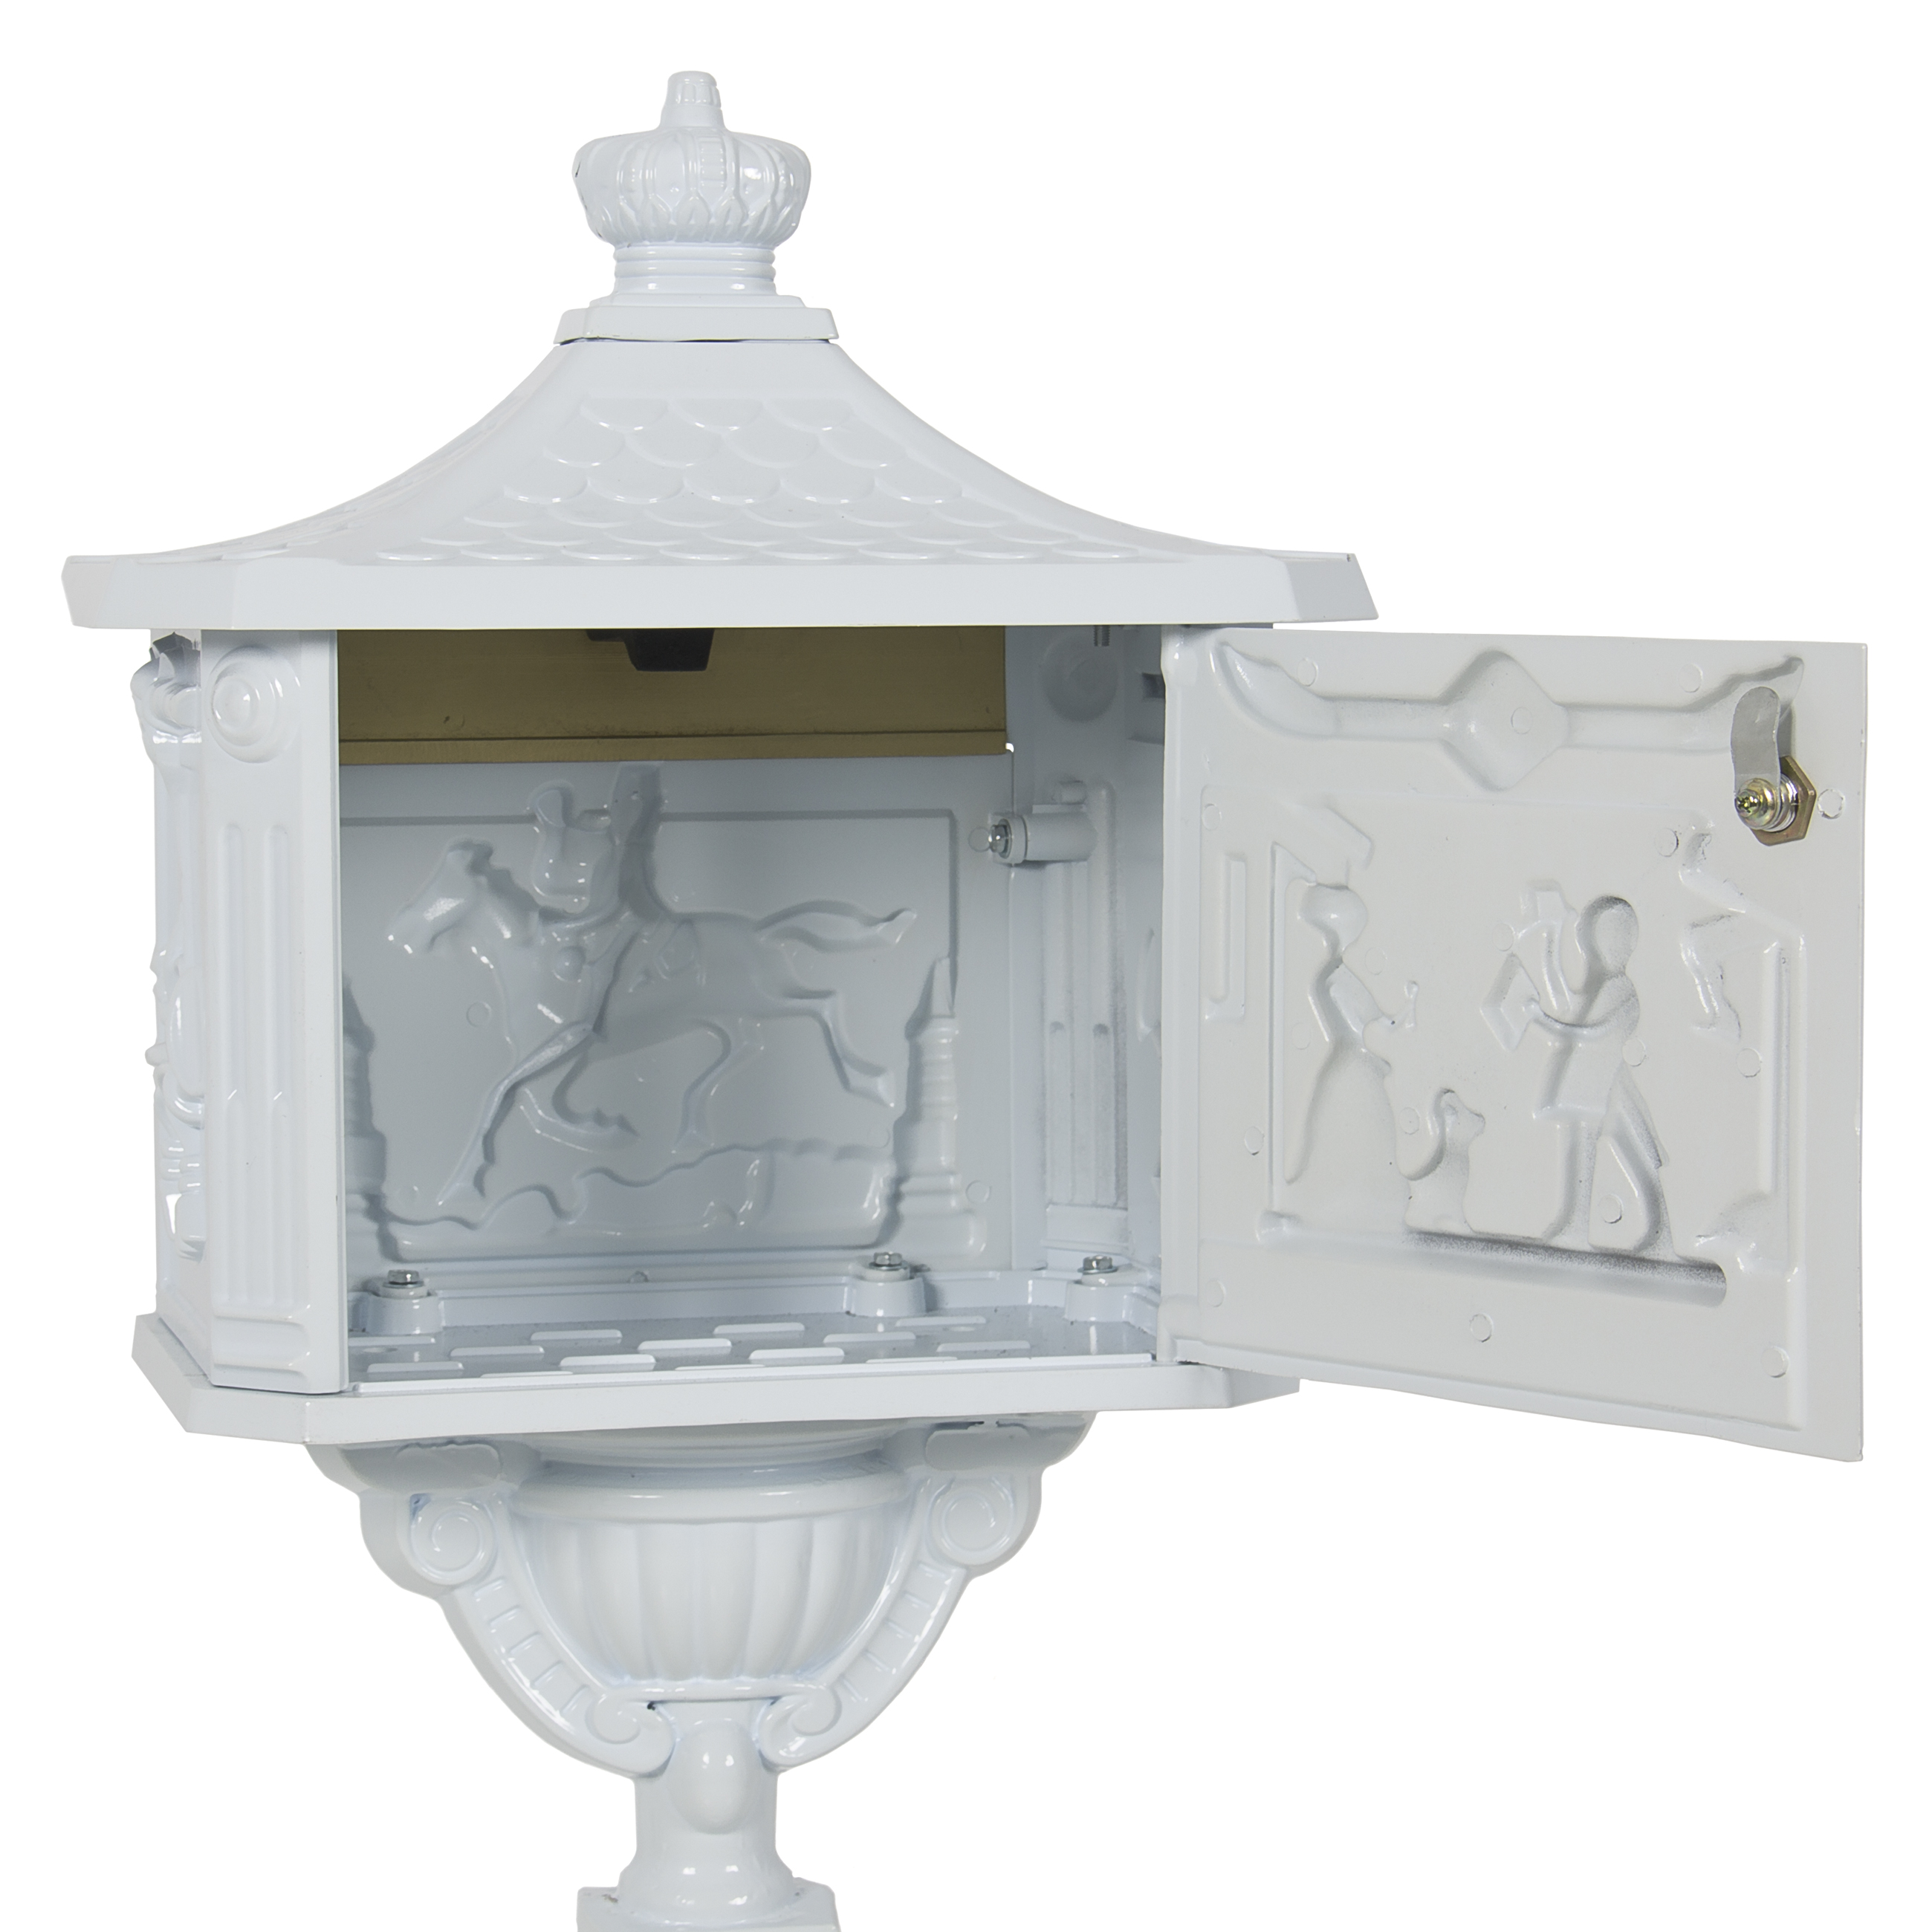 pedestal outdoorfurniture ritas furniture mailbox outdoor products victorian img